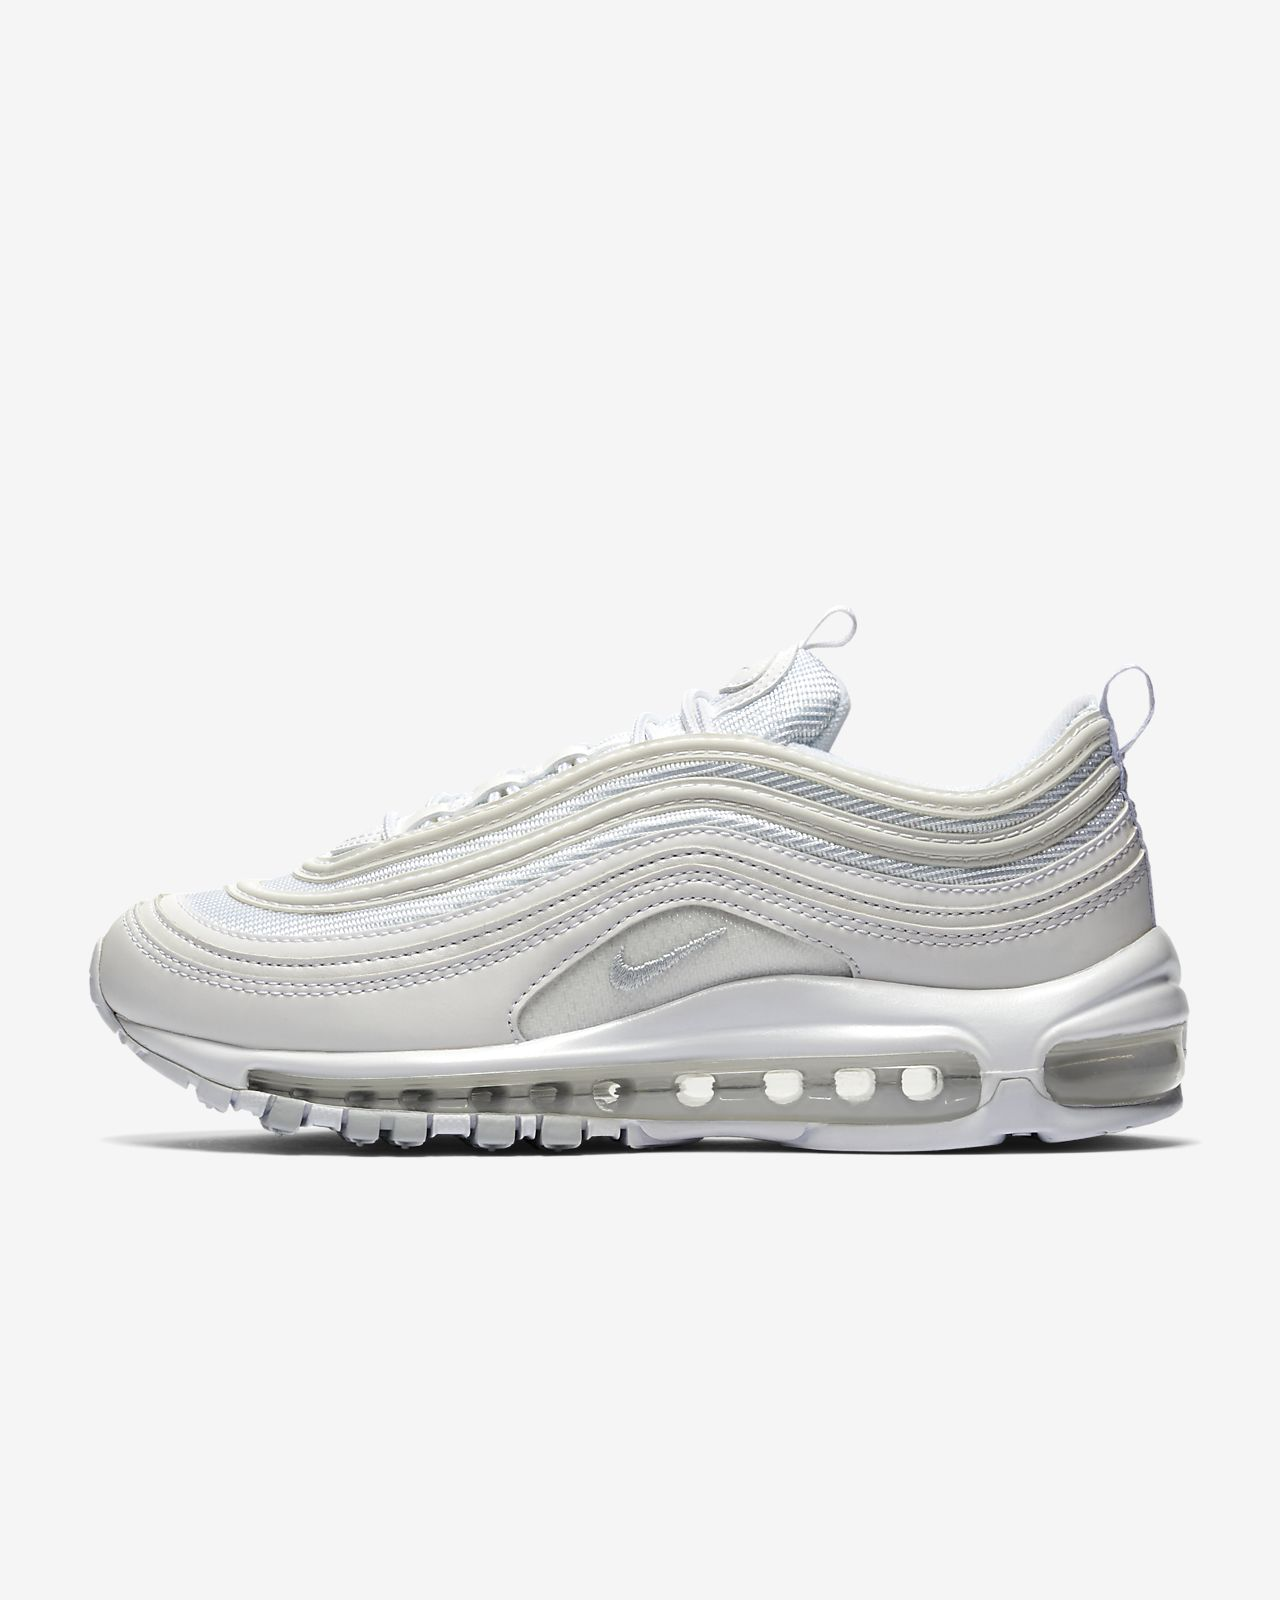 Women Shoes in 2020 | Air max 97 outfit, Nike air max, Nike